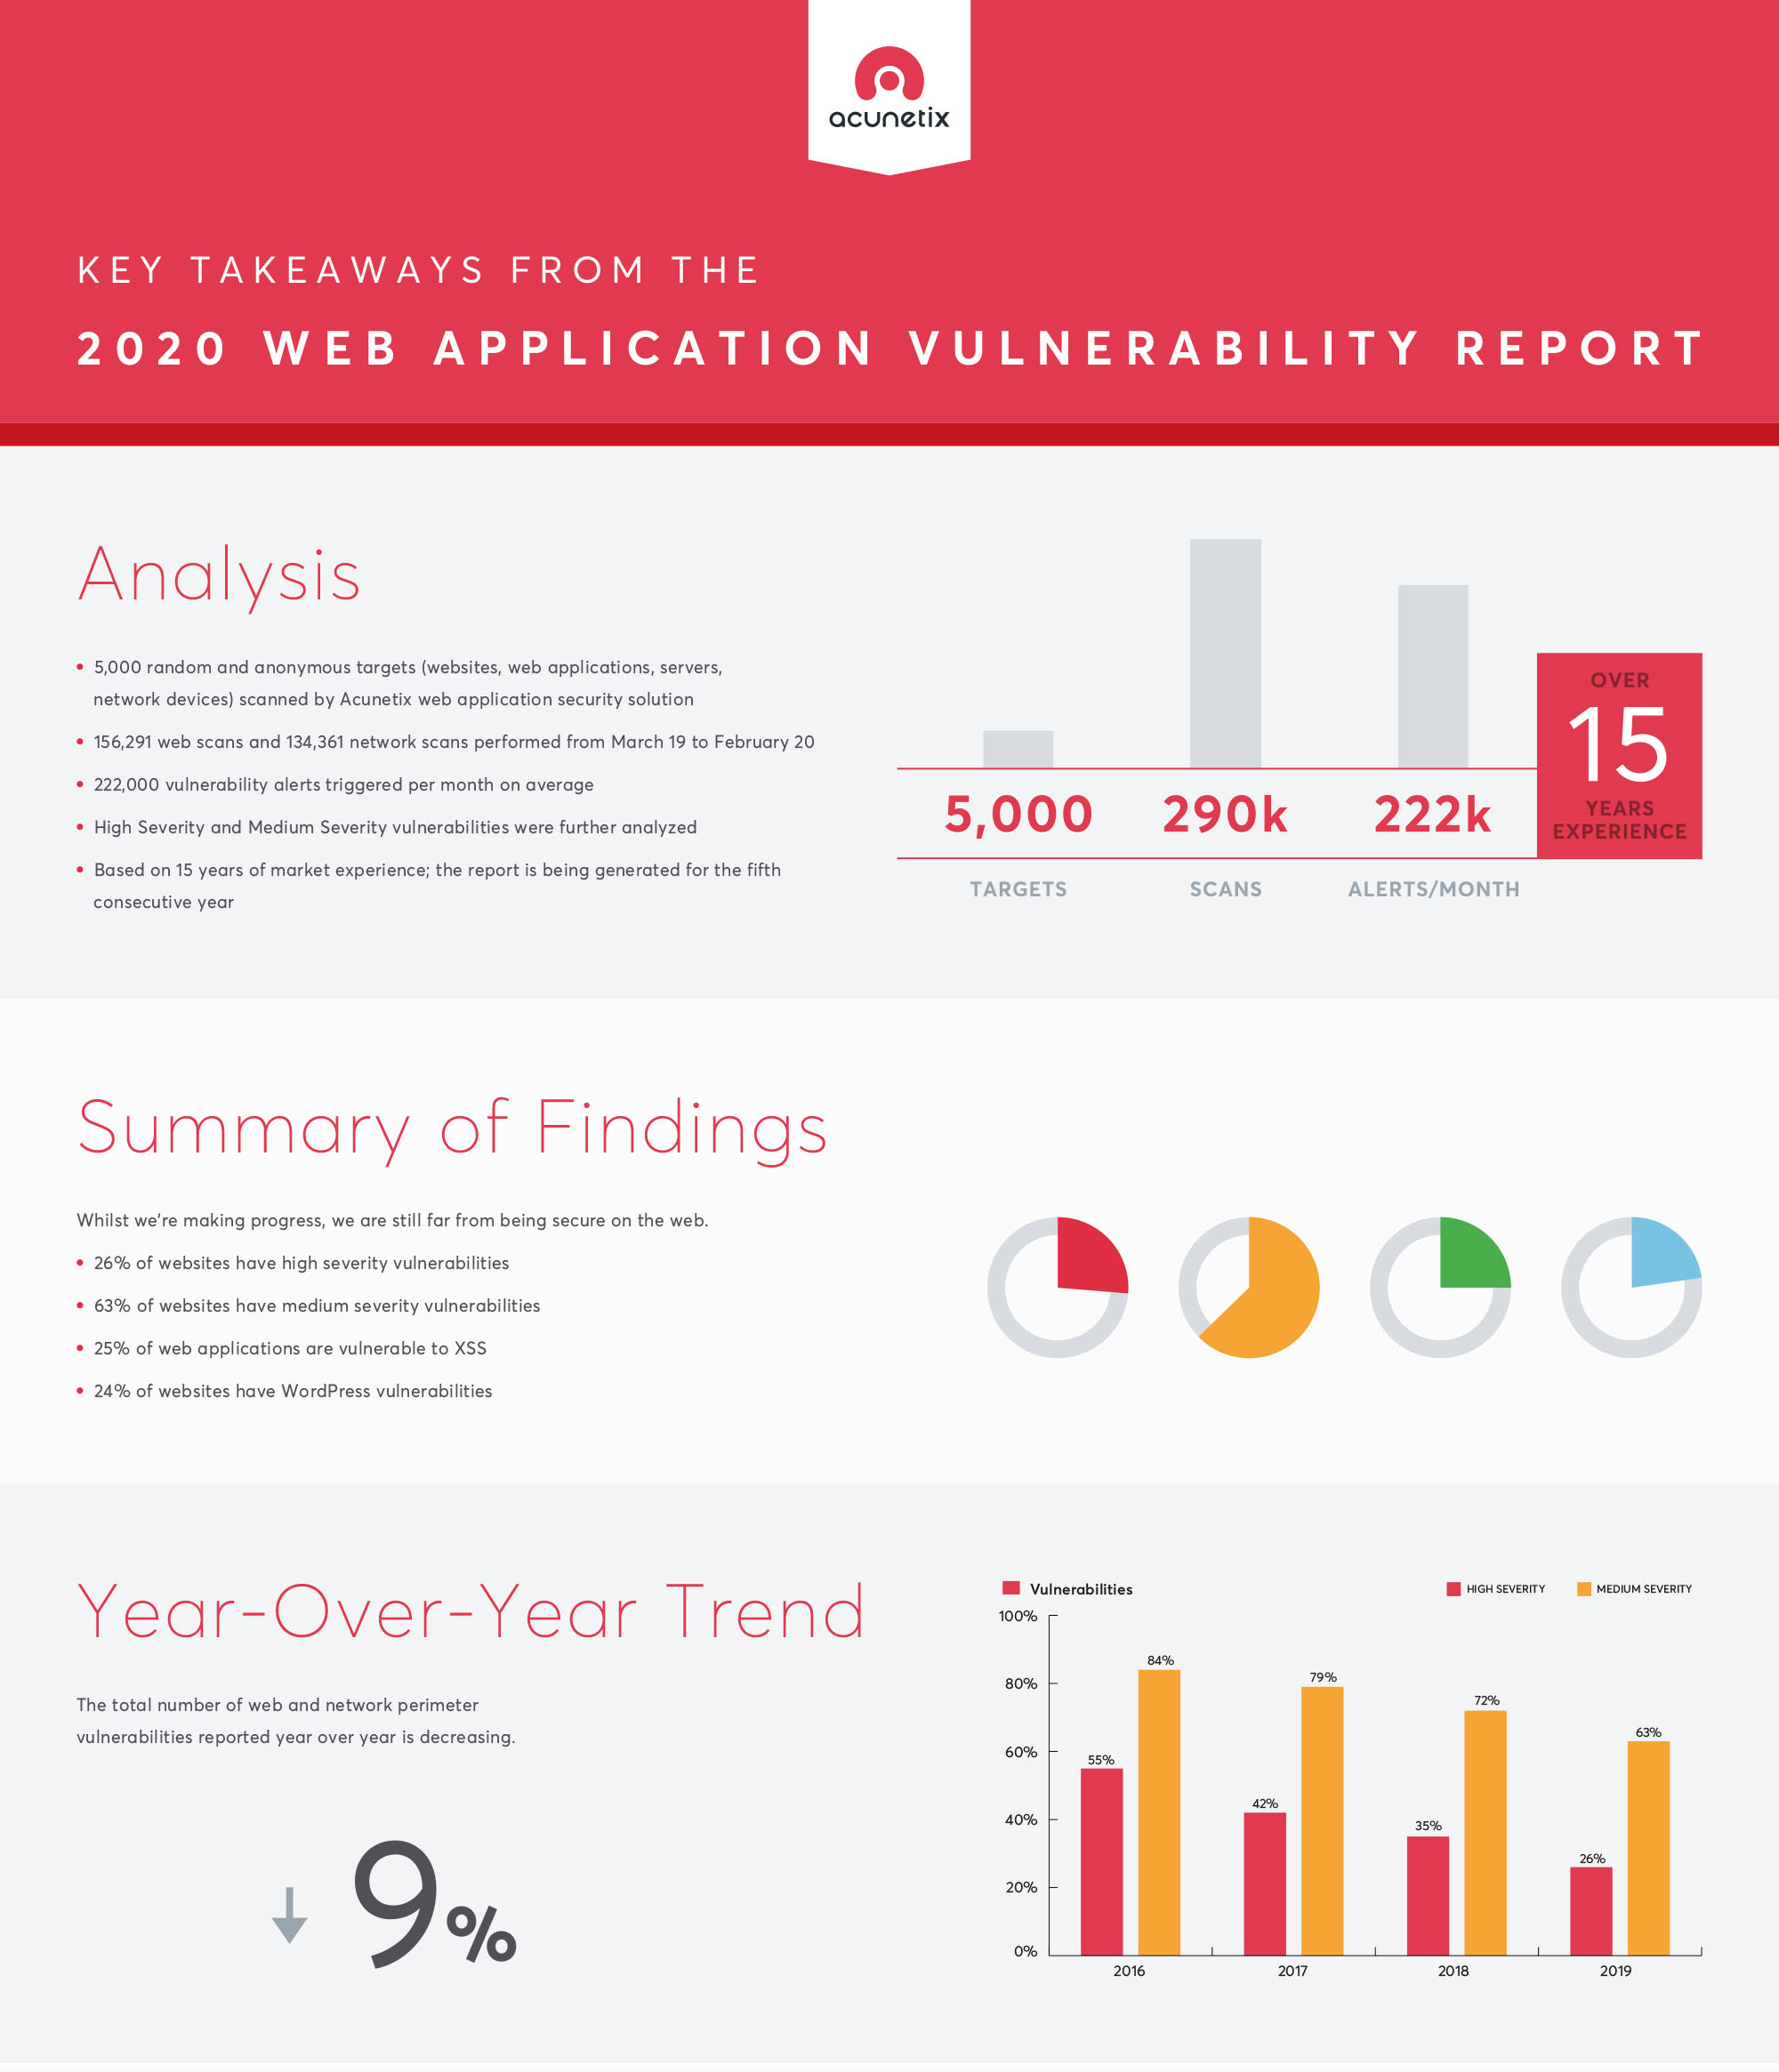 Key Takeaways from the 2020 Web Application Vulnerability Report